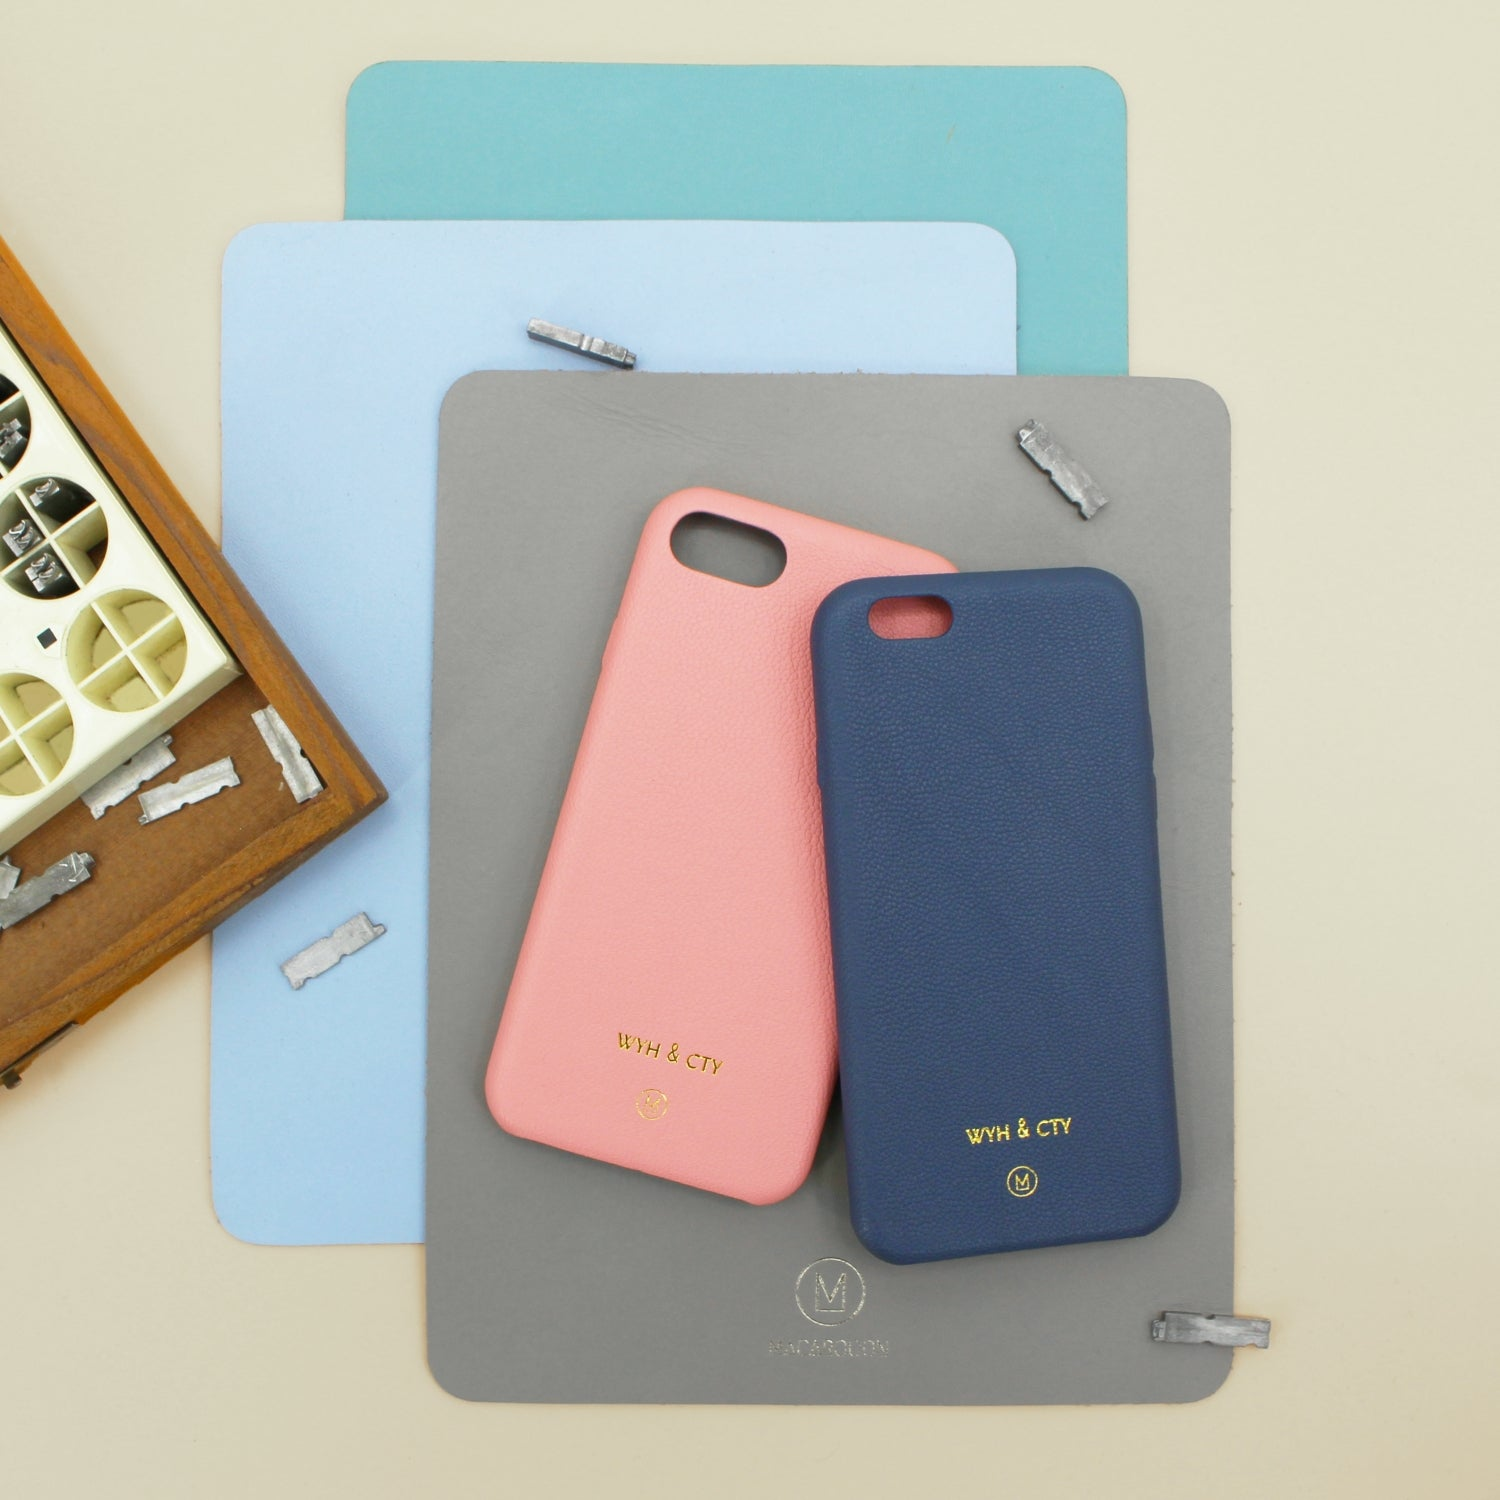 Have a special name or date embossed on your iPhone Cases at Macarooon.